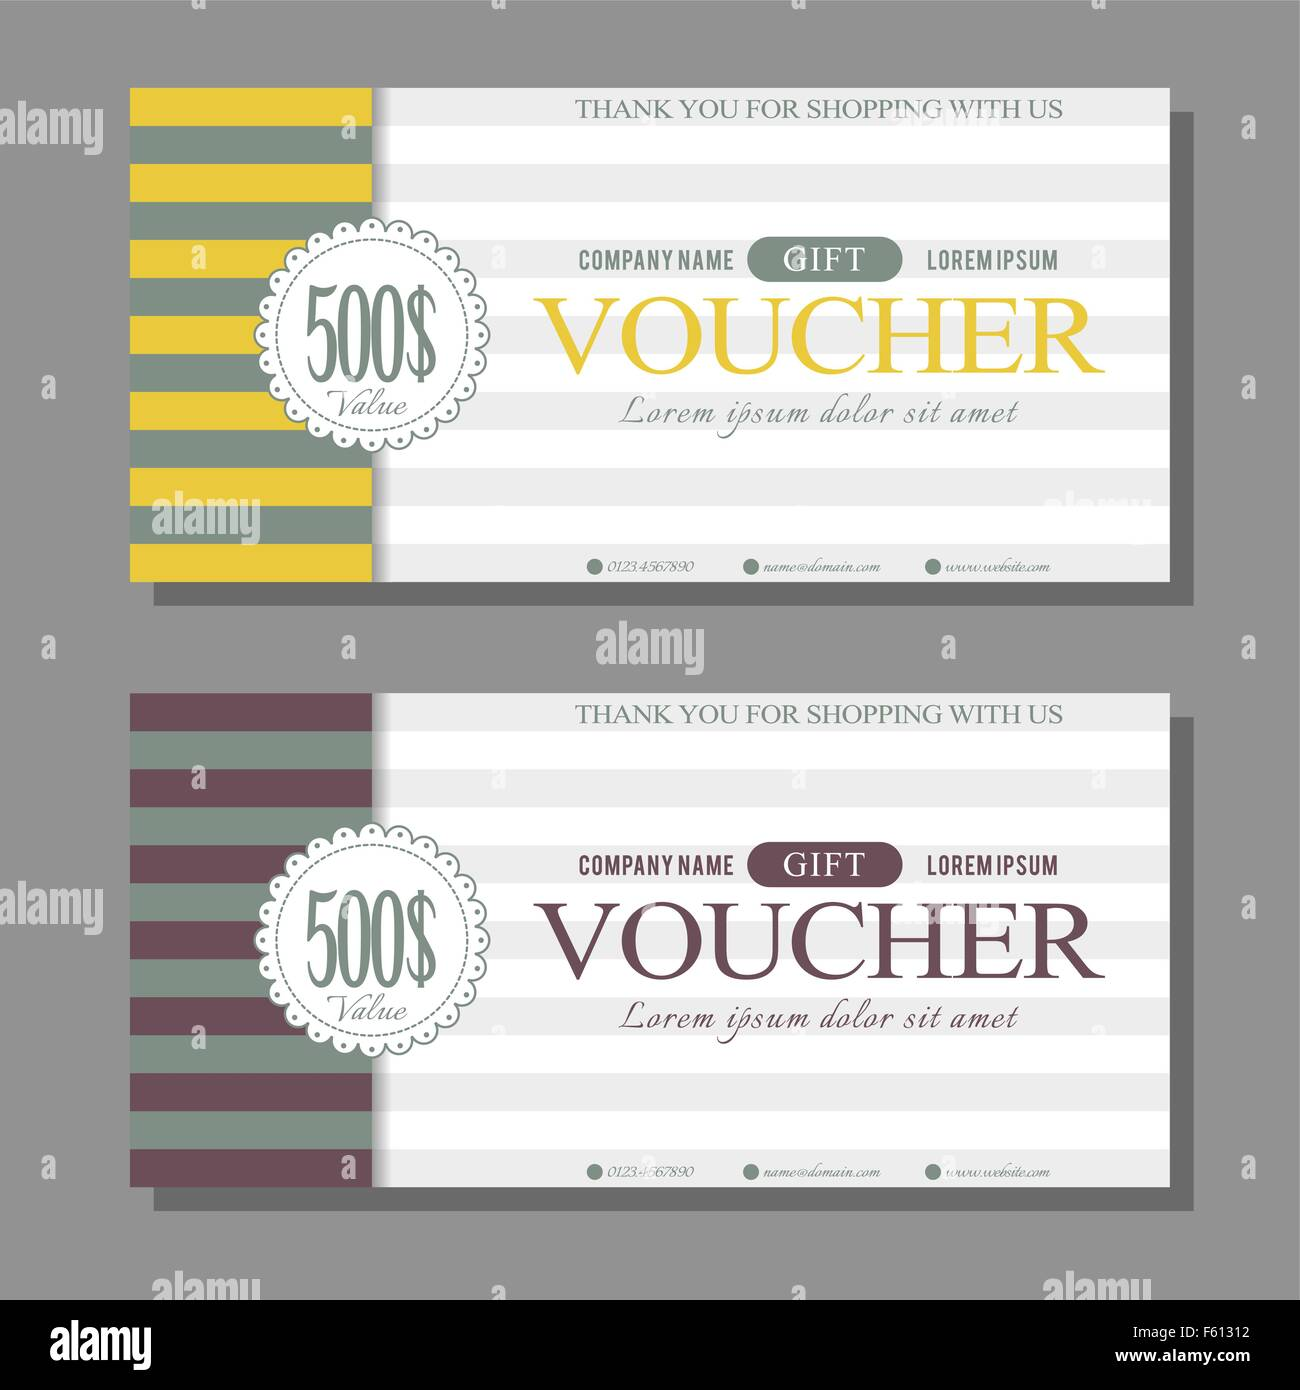 Vintage Gift Voucher Template  Lunch Voucher Template